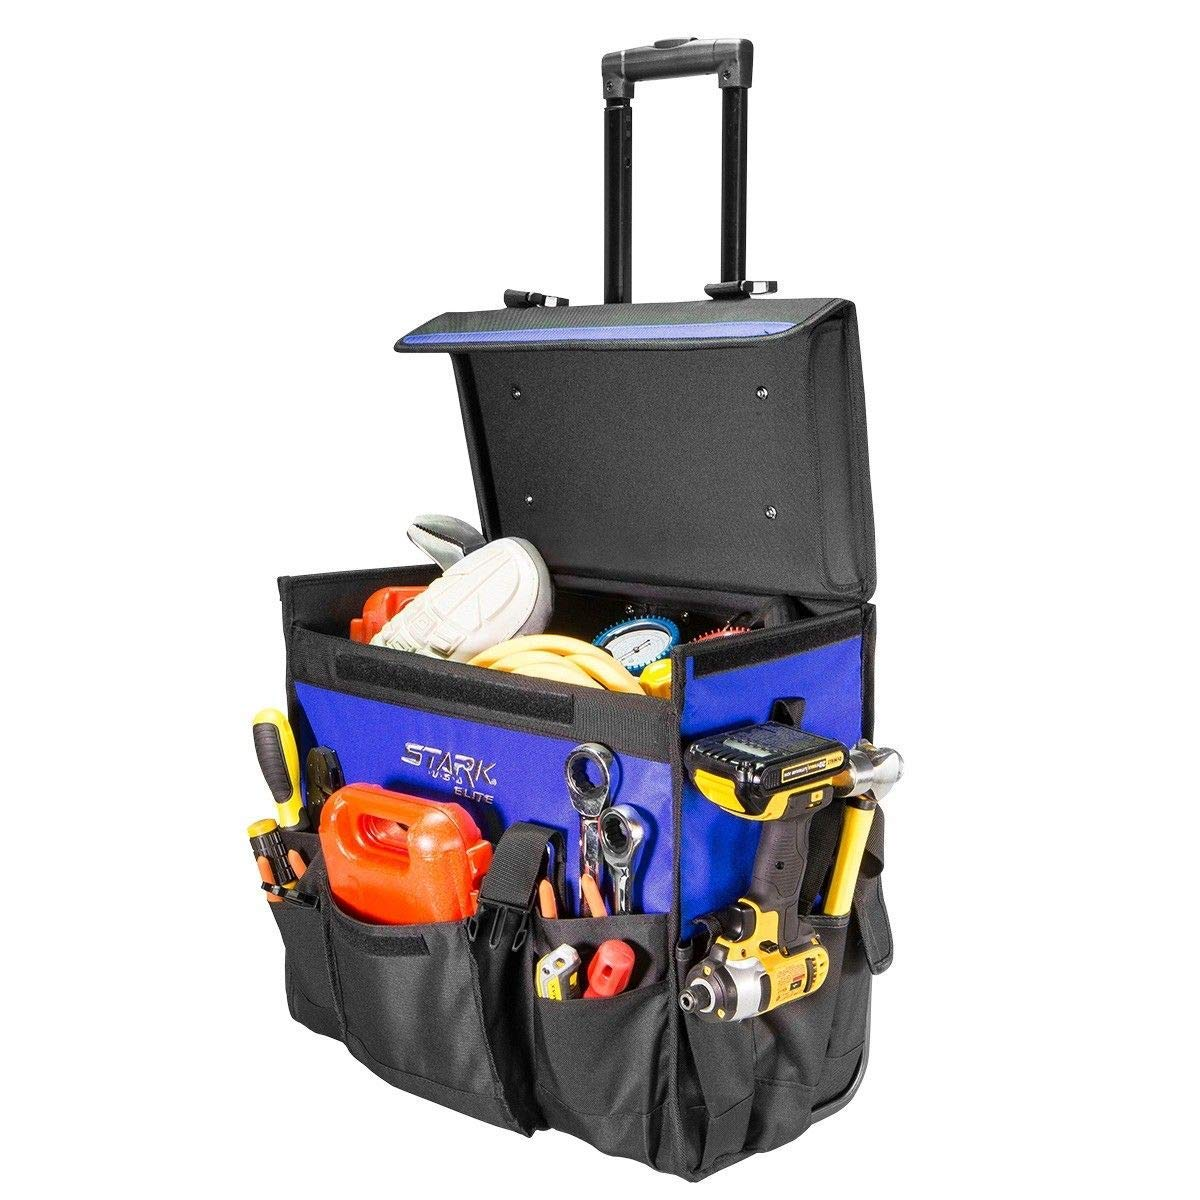 """KCHEX>XLarge 20"""" Rolling portable Heavy Duty Portable Tool Bag Storage Organizer Tote>20inch. Rolling Tool Tote is the perfect tool bag for saving you a trip to the truck."""